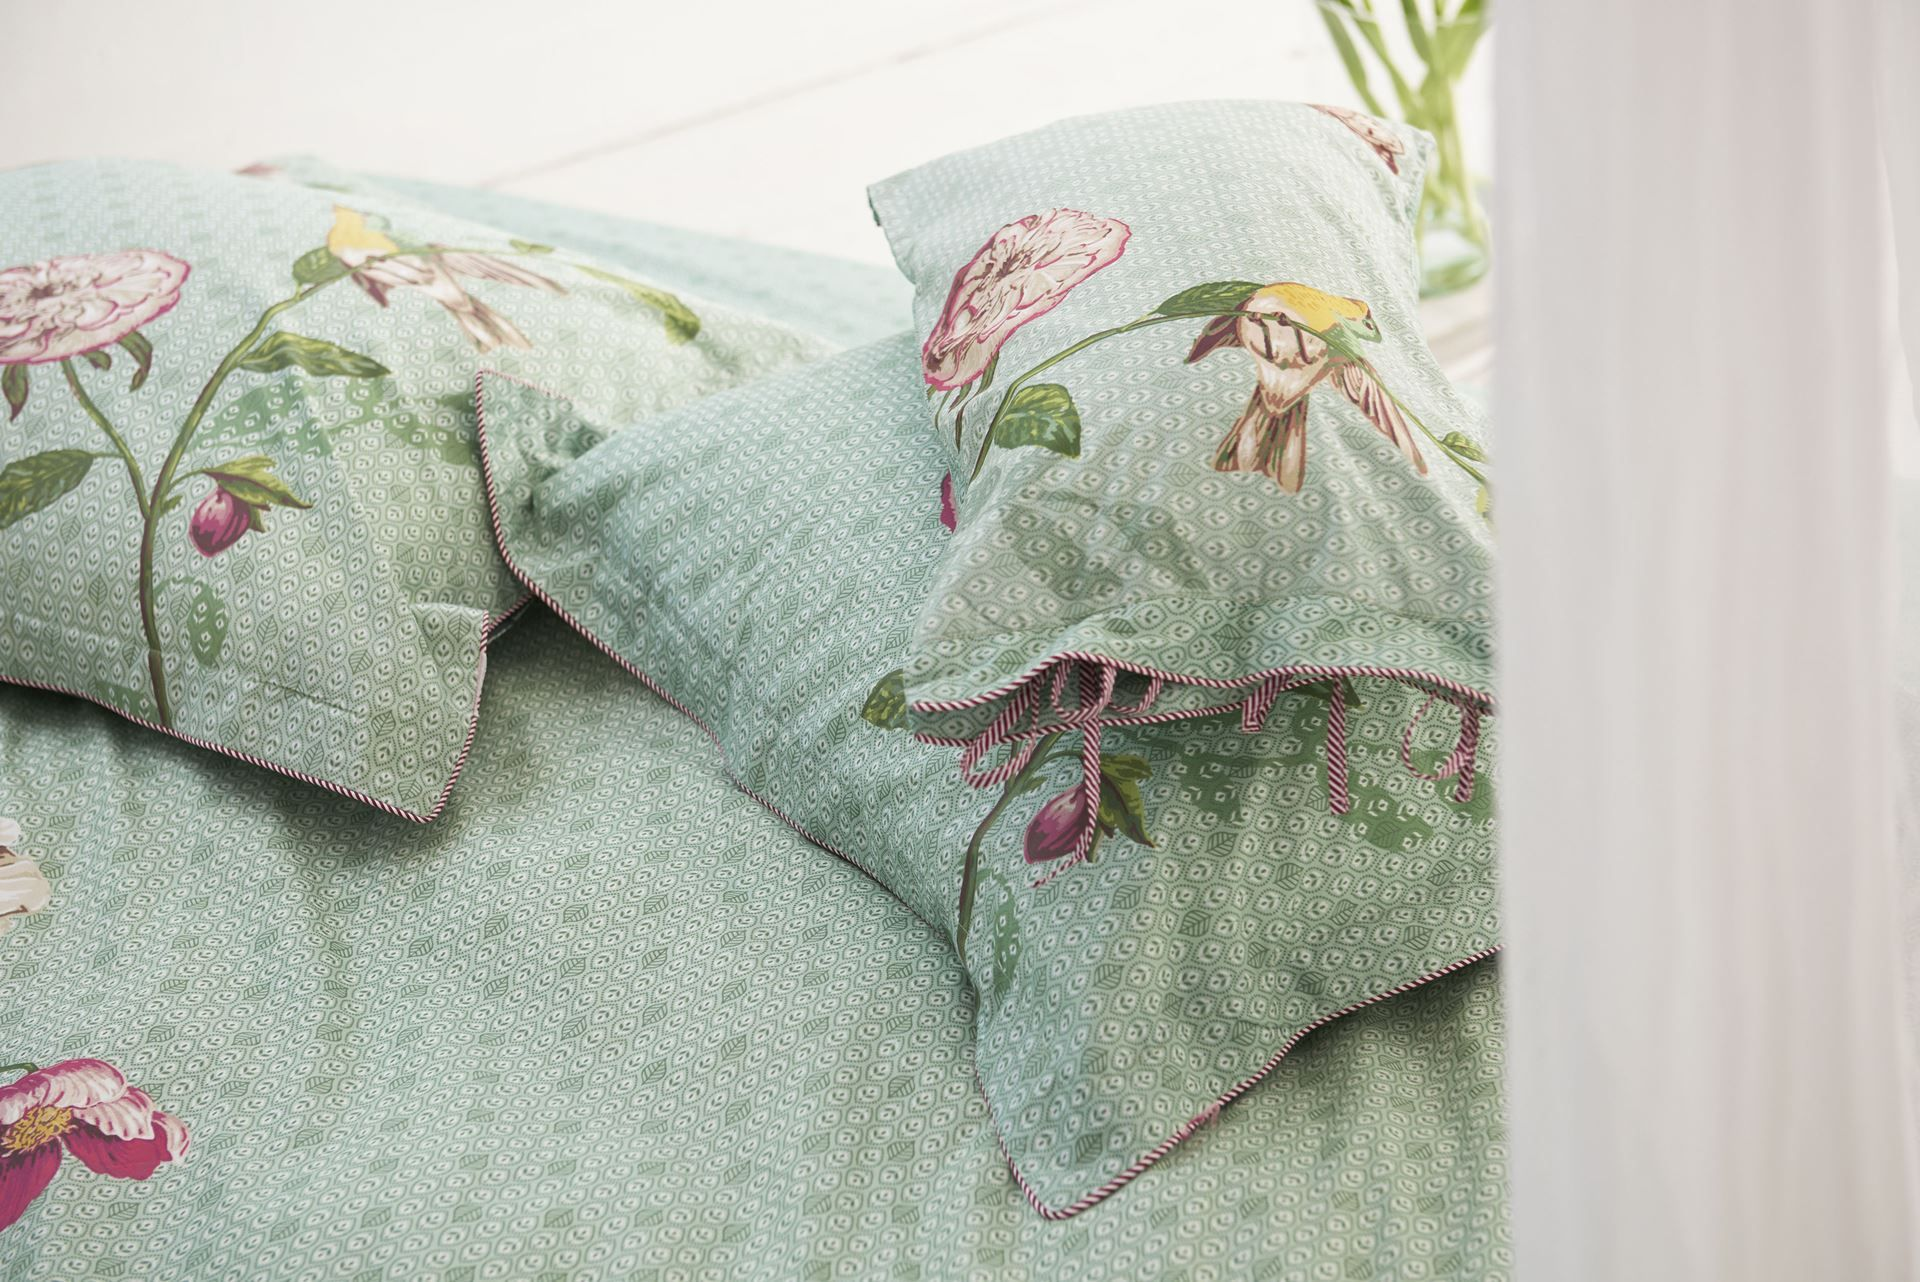 Pip Studio Slaapkamer : Pip studio sierkussen poppy green cm things i like